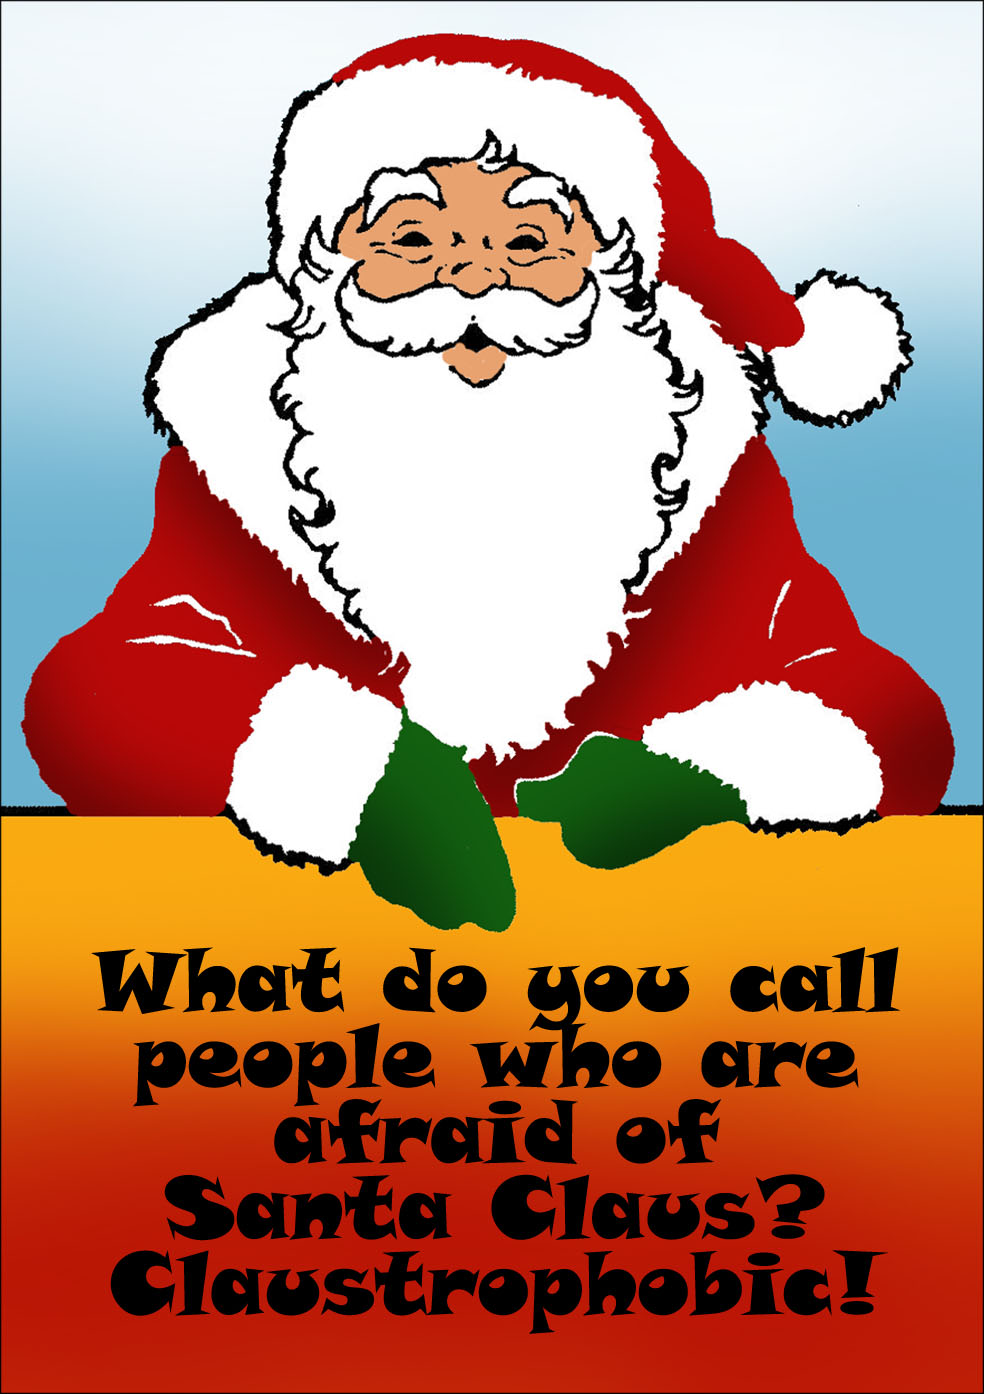 Funny Christmas riddle: What do you call people who are afraid of Santa Claus? Claustrophobic!